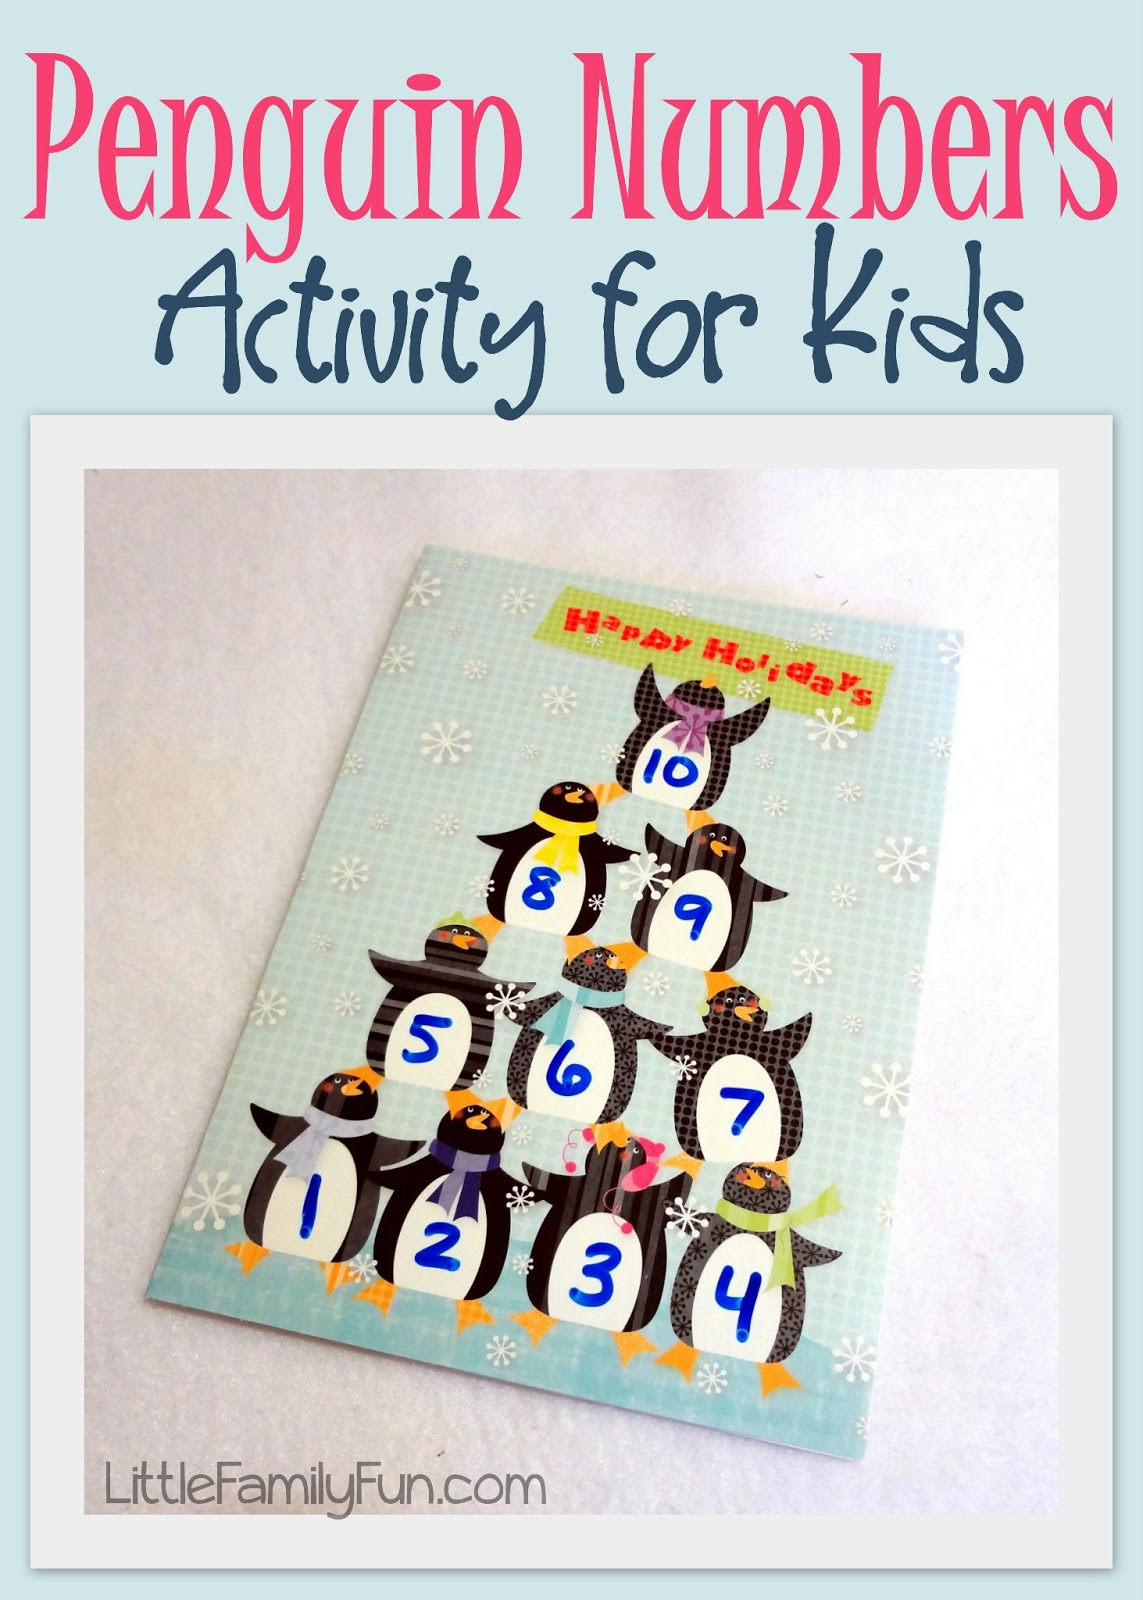 Little Family Fun Penguin Numbers Activity